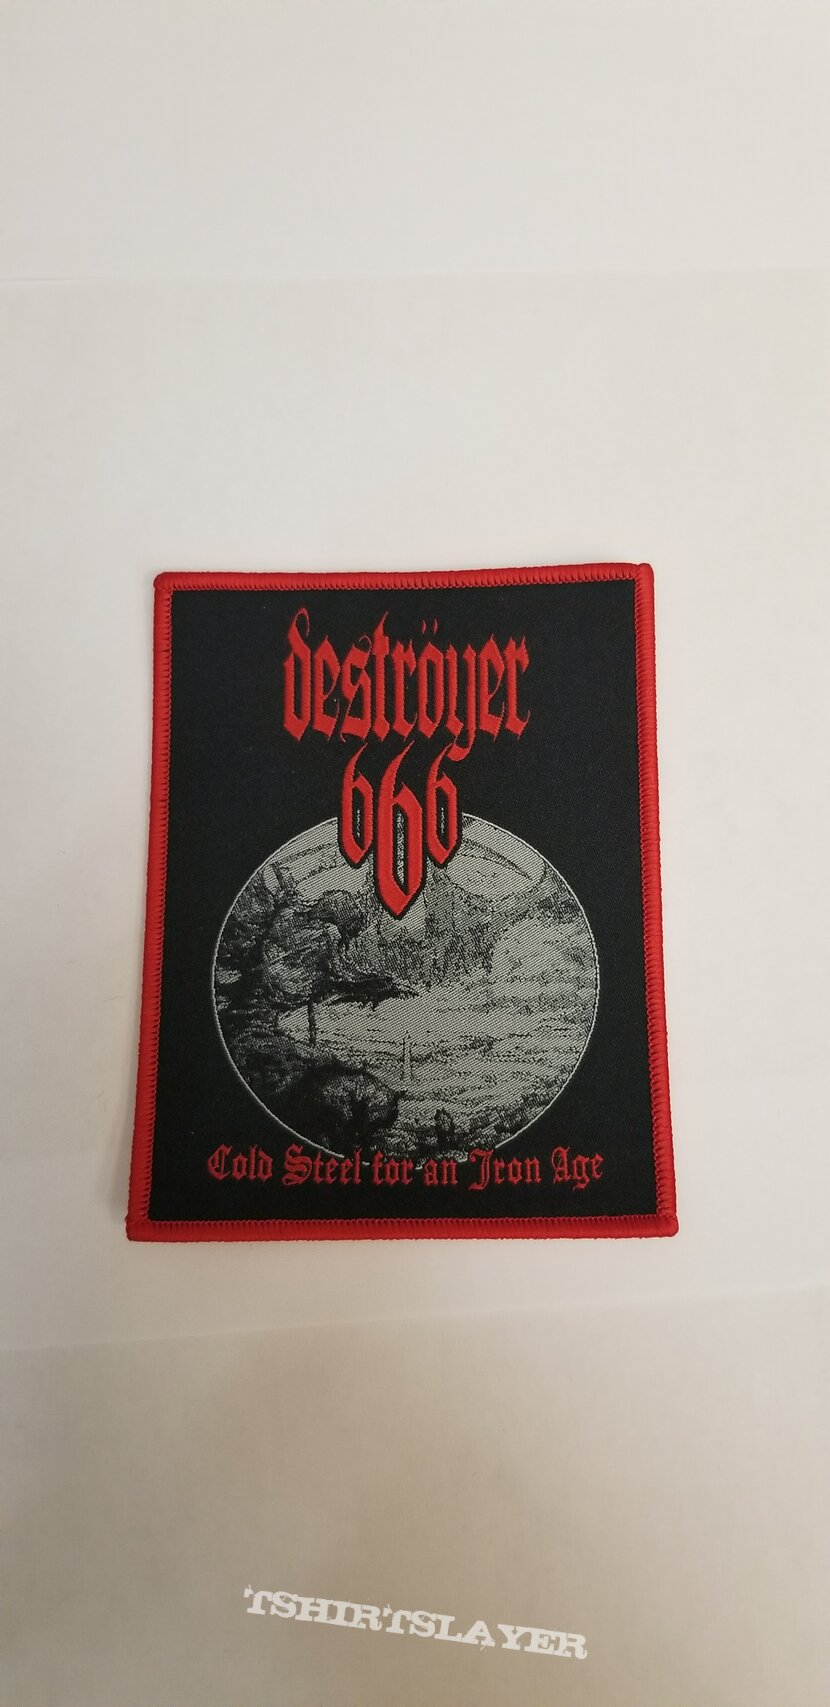 Destroyer 666 - Cold Steel for an Iron Age Red Border Patch